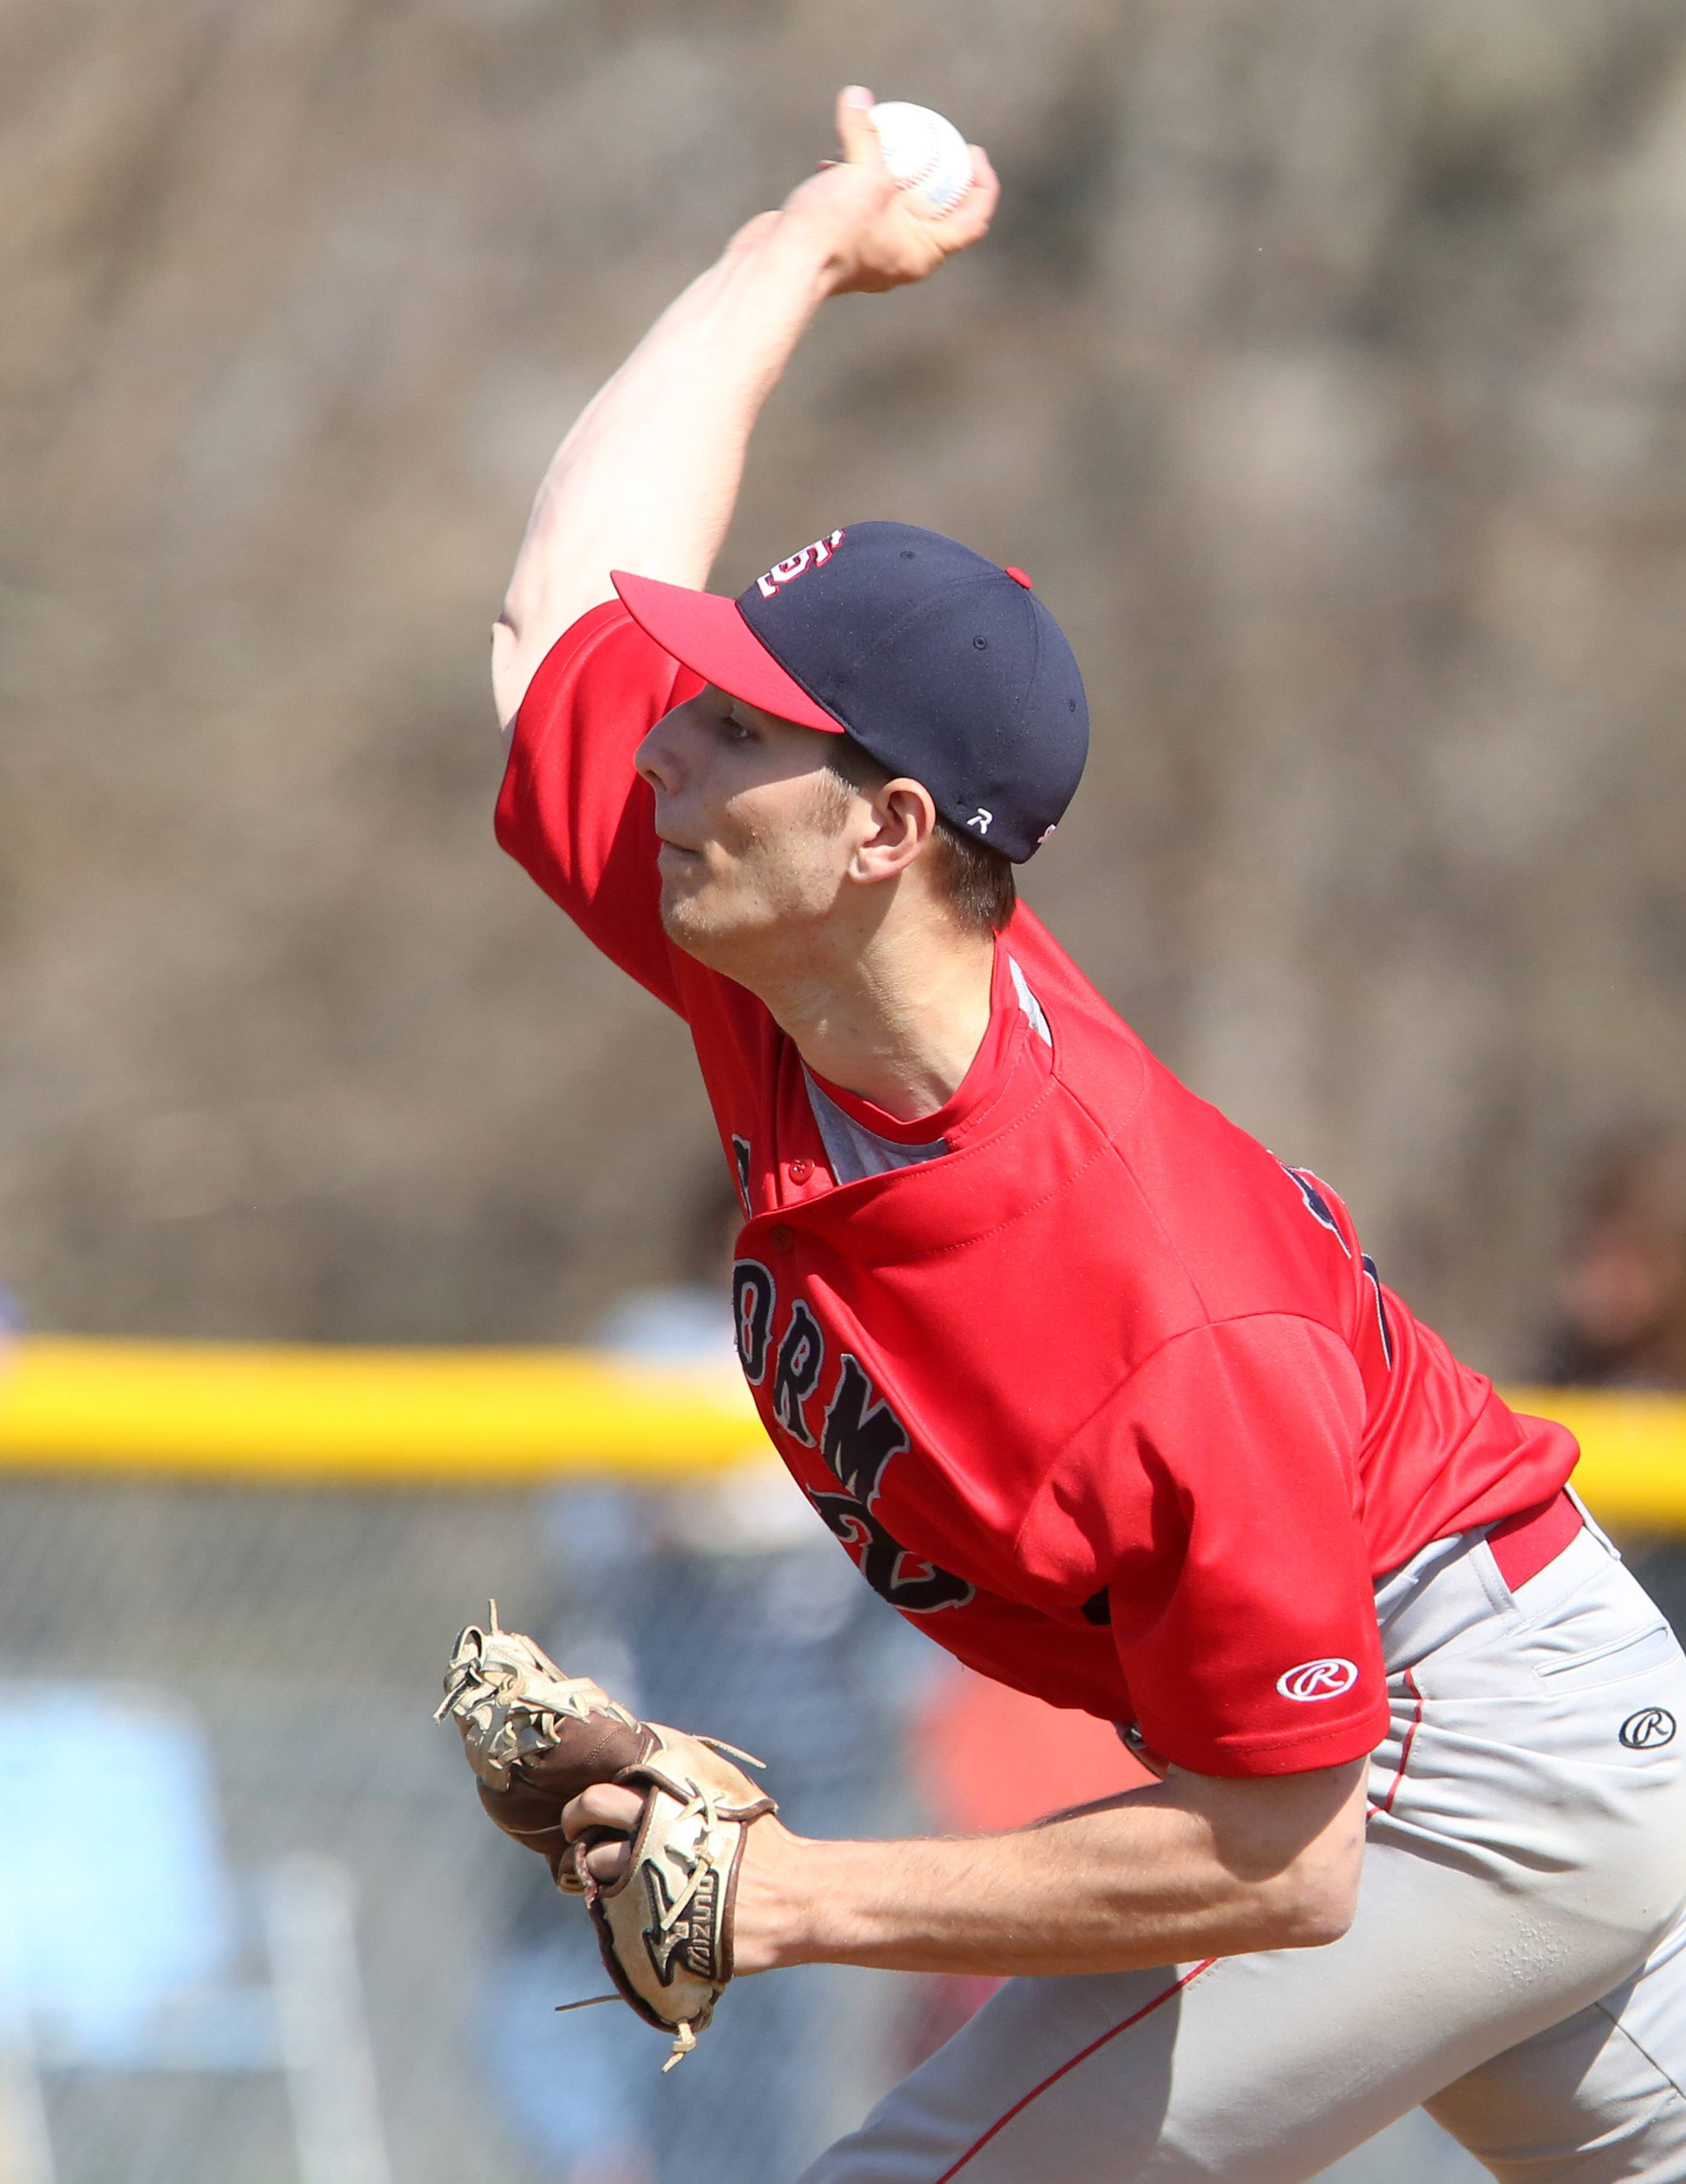 South Elgin's Ryan Weiss delivers against Bartlett earlier this month.